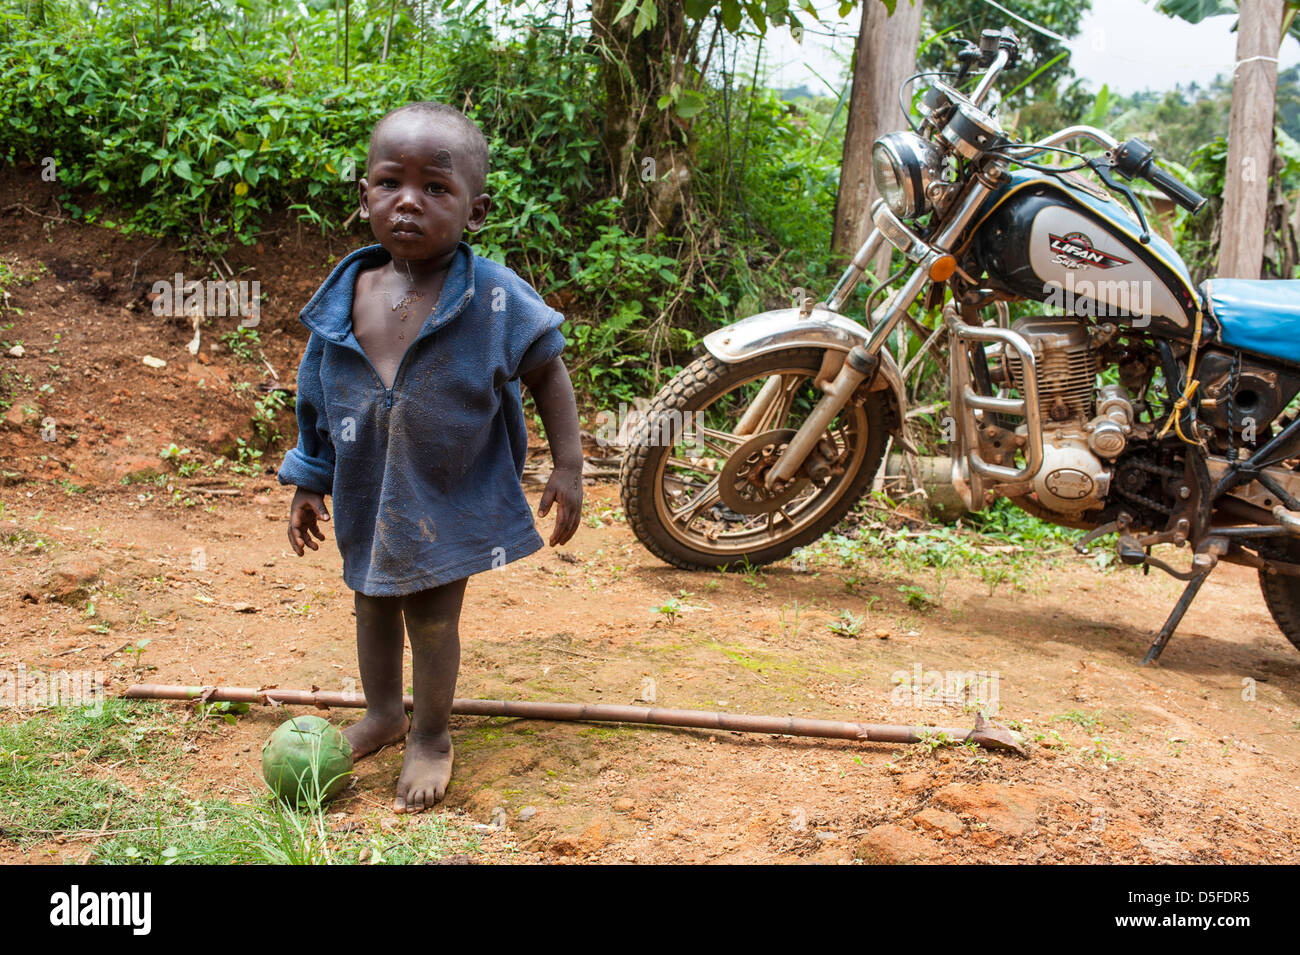 Young African boy with cabbage at his feet with motorcycle in background in Cameroon Africa - Stock Image